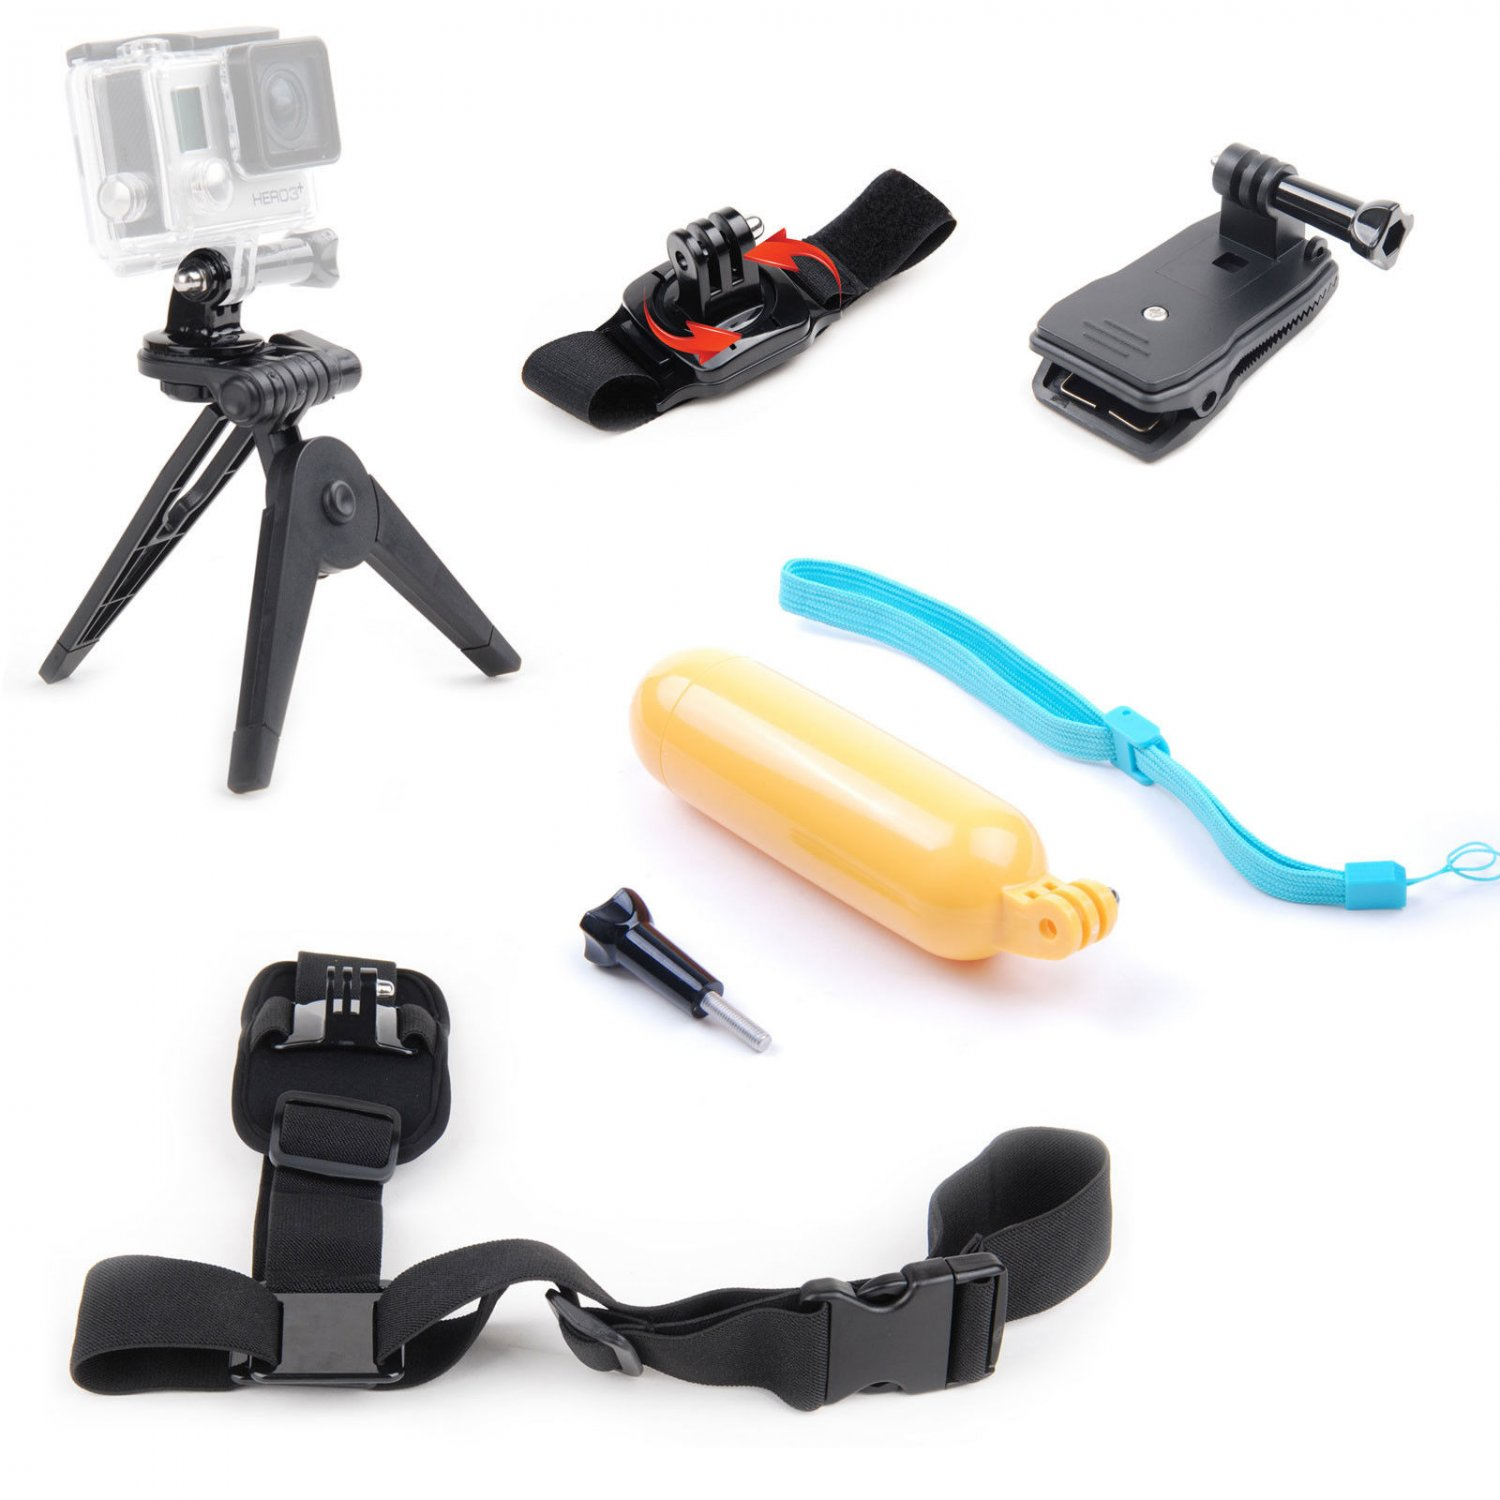 Accessories Kit Mini Tripod Shoulder Wrist Strap Hand Grip Clamp Mount for GoPro